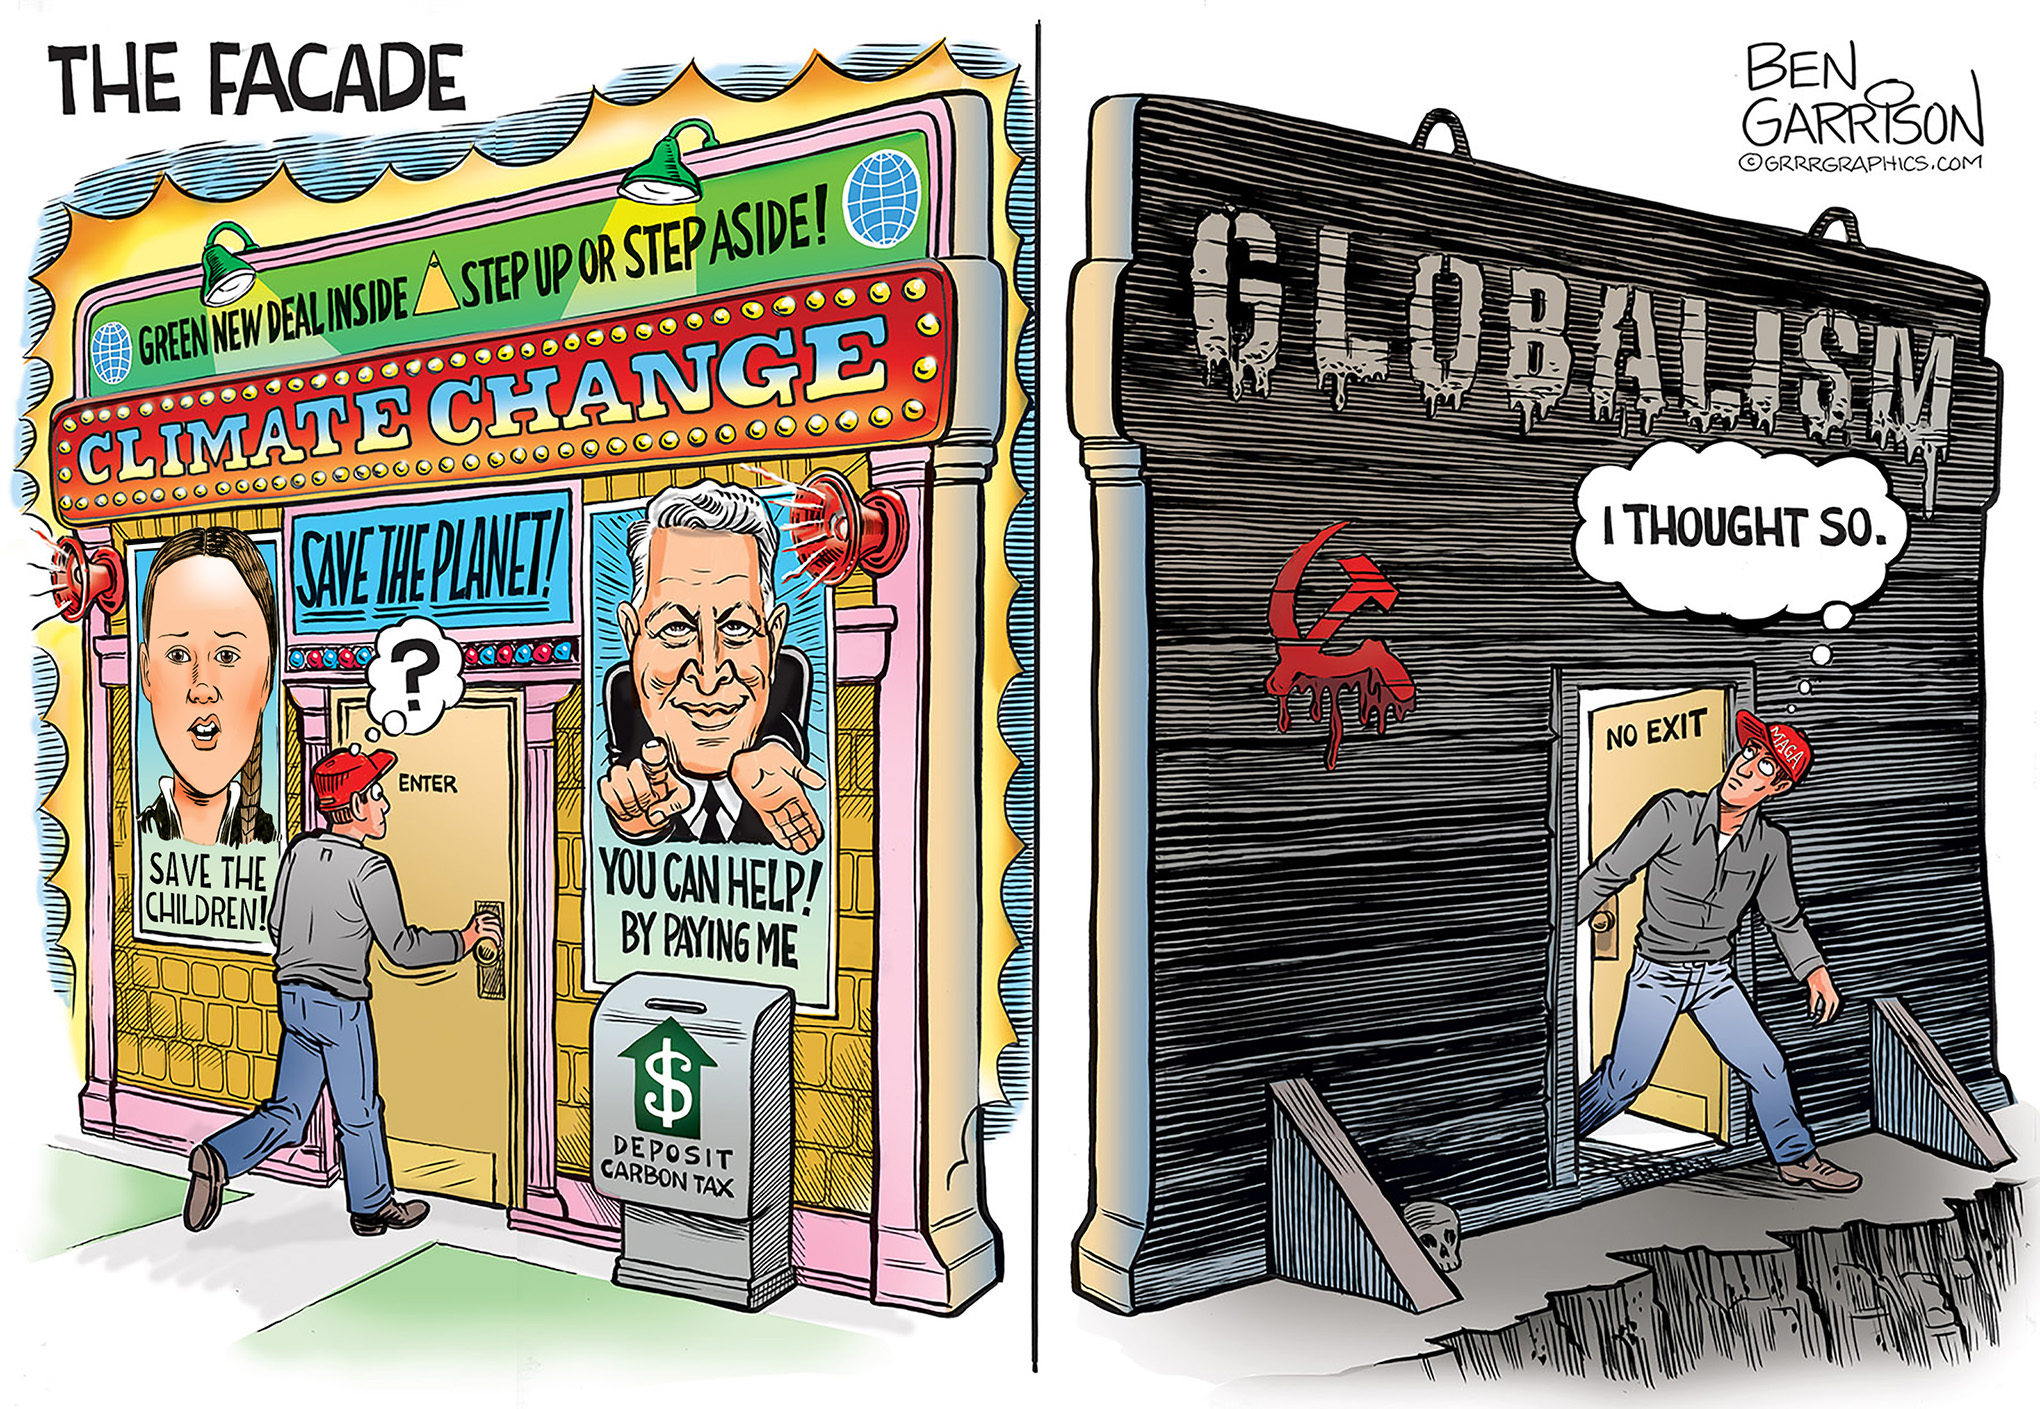 https://grrrgraphics.com/wp-content/uploads/2019/09/climate_change_facade_update.jpg